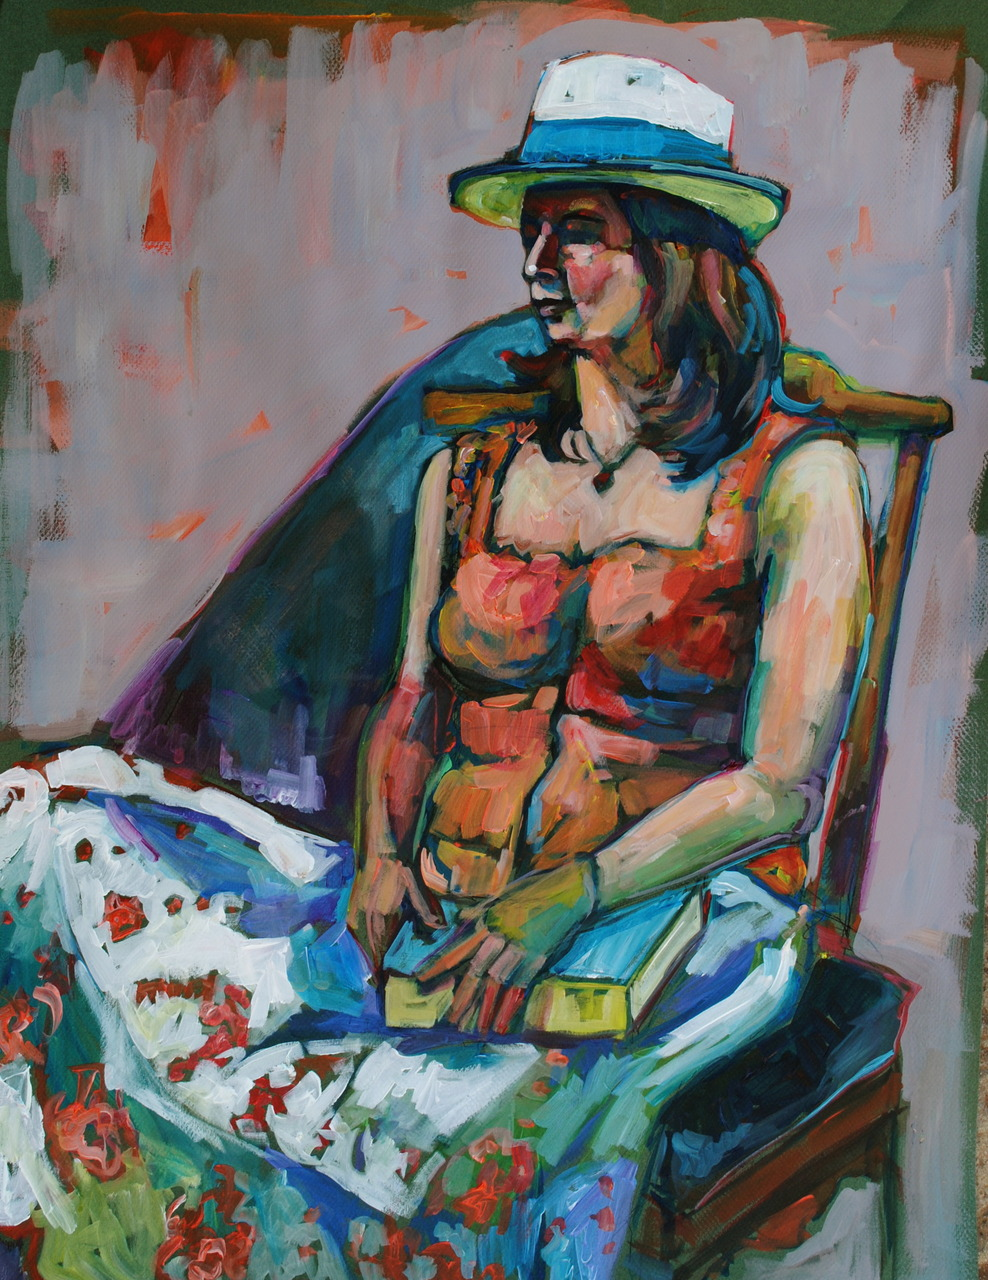 Figure Study with the group at Firehouse North in Berkeley yesterday. Cropped the figure for a better composition. Approx. 2.5 hours. Acrylic on canson paper.